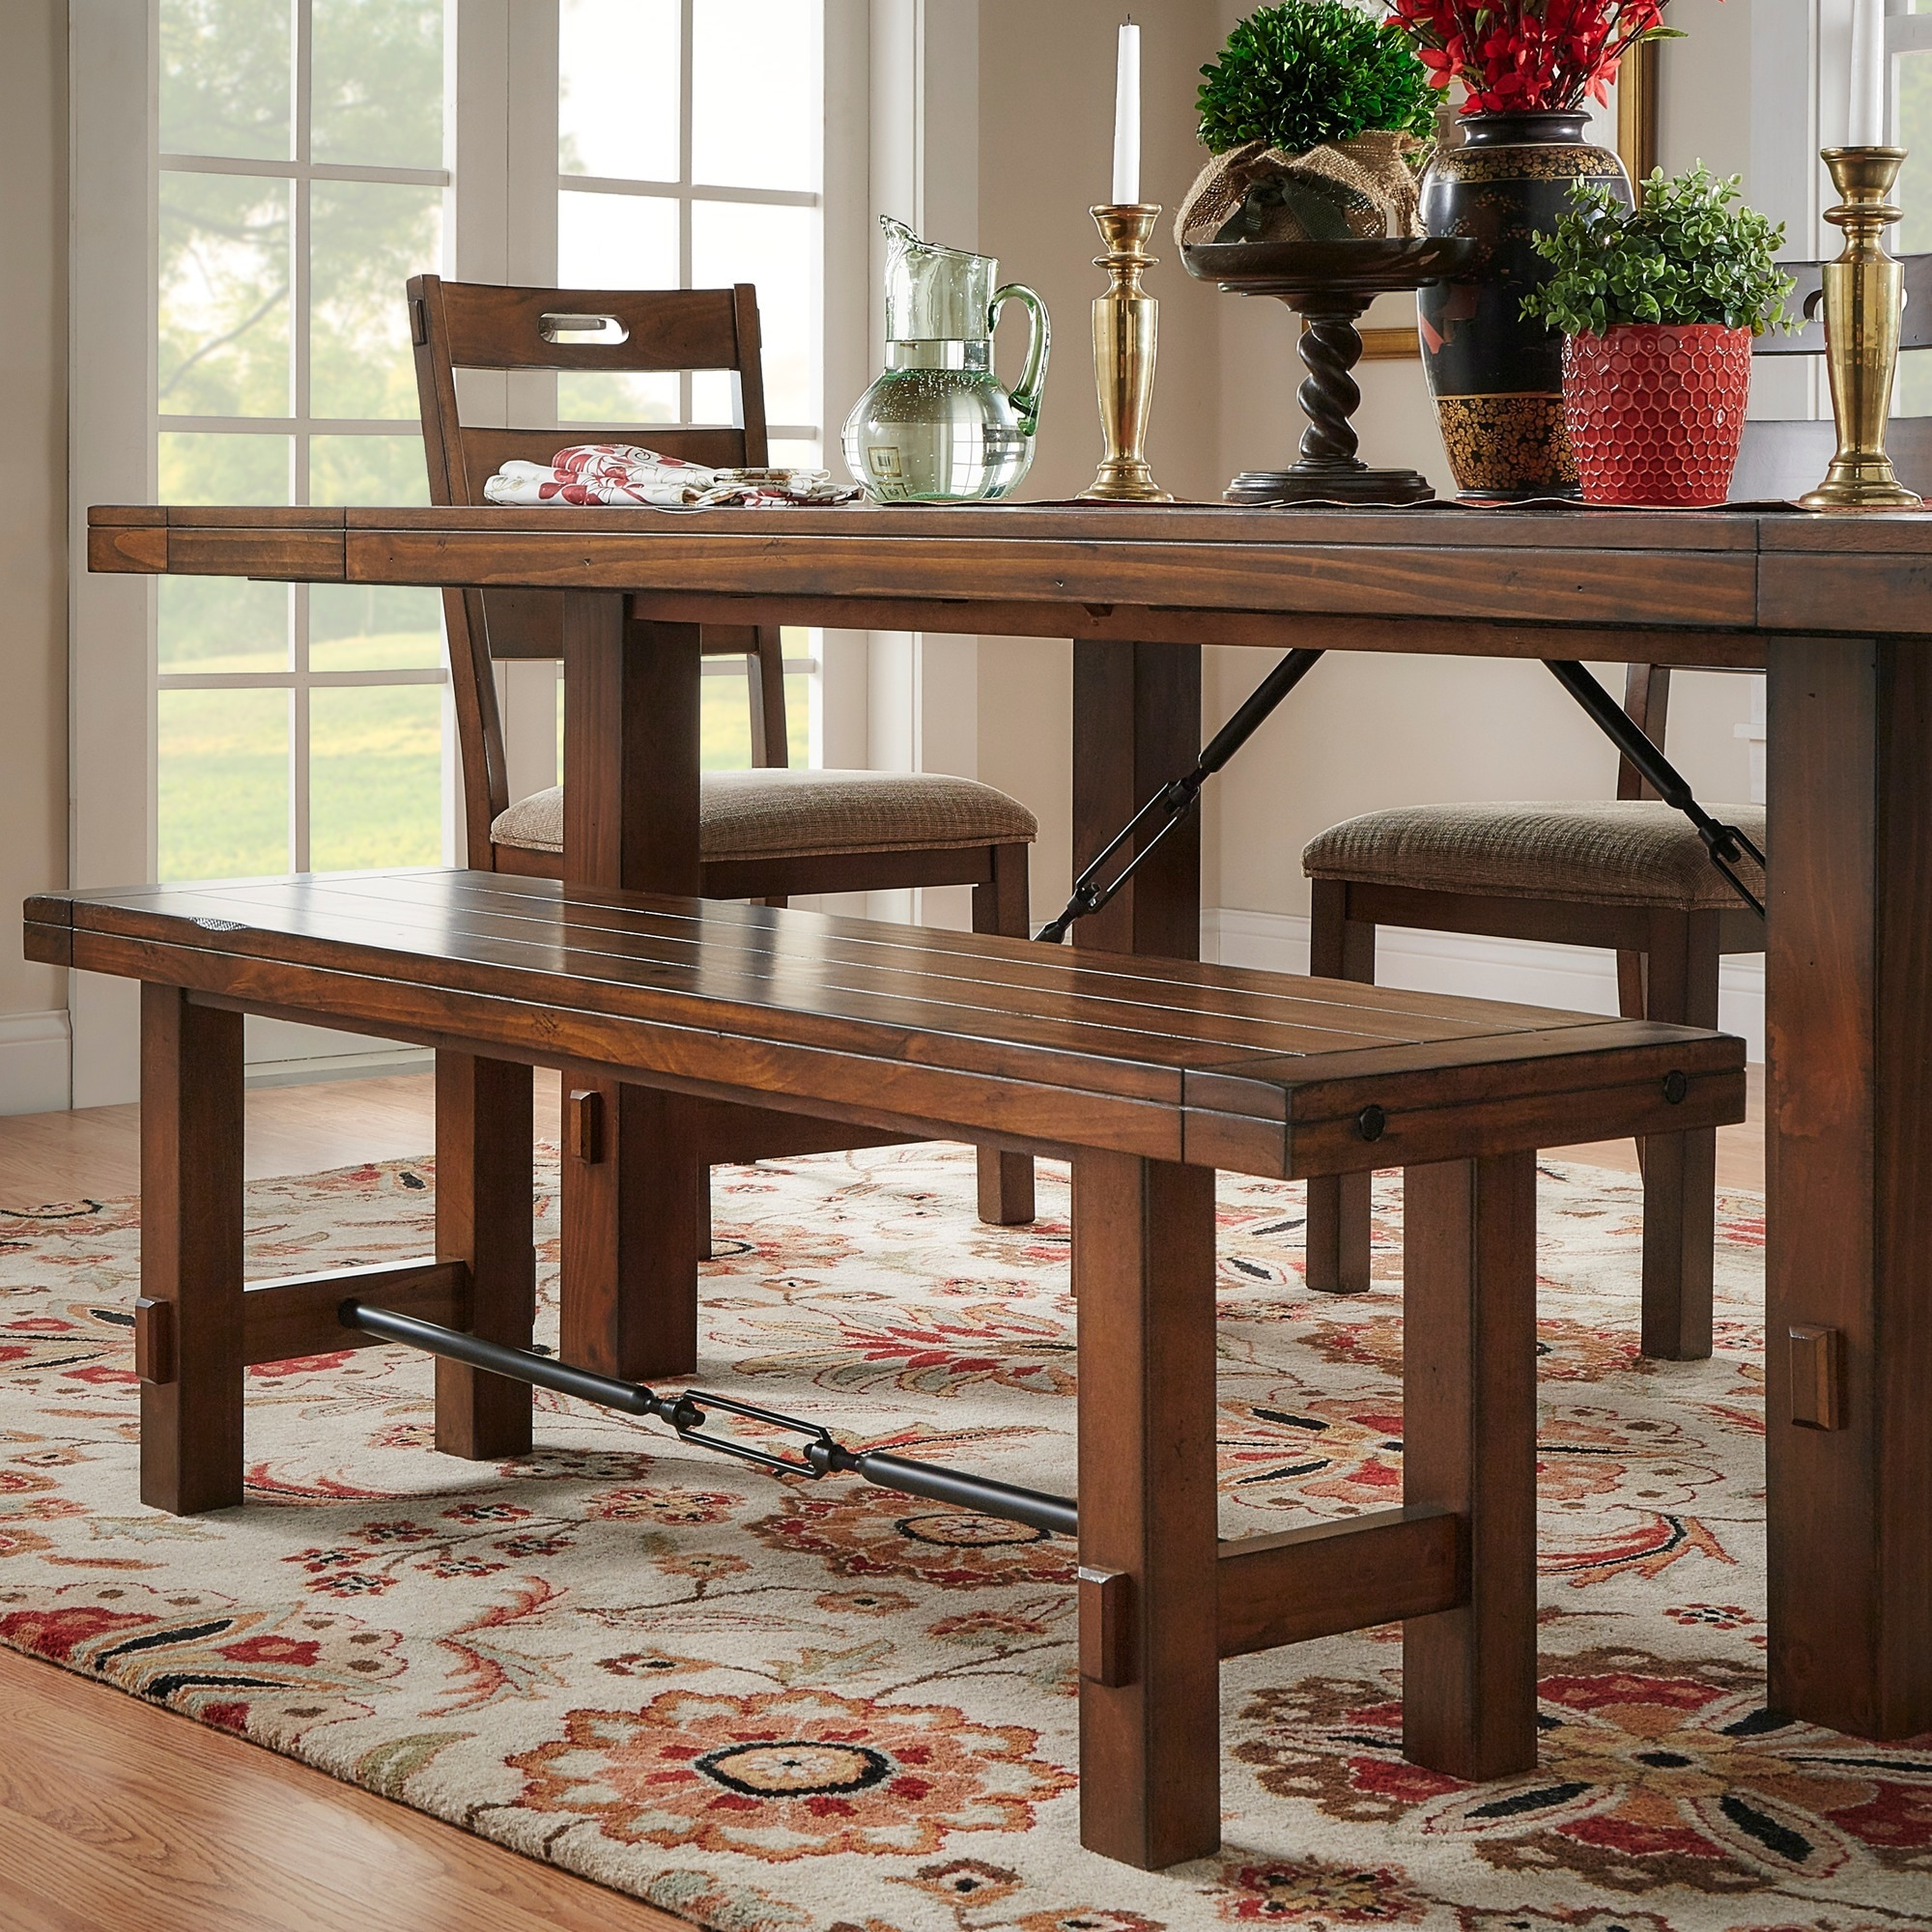 Amazing Swindon Rustic Oak Turnbuckle Dining Bench By Inspire Q Classic Andrewgaddart Wooden Chair Designs For Living Room Andrewgaddartcom